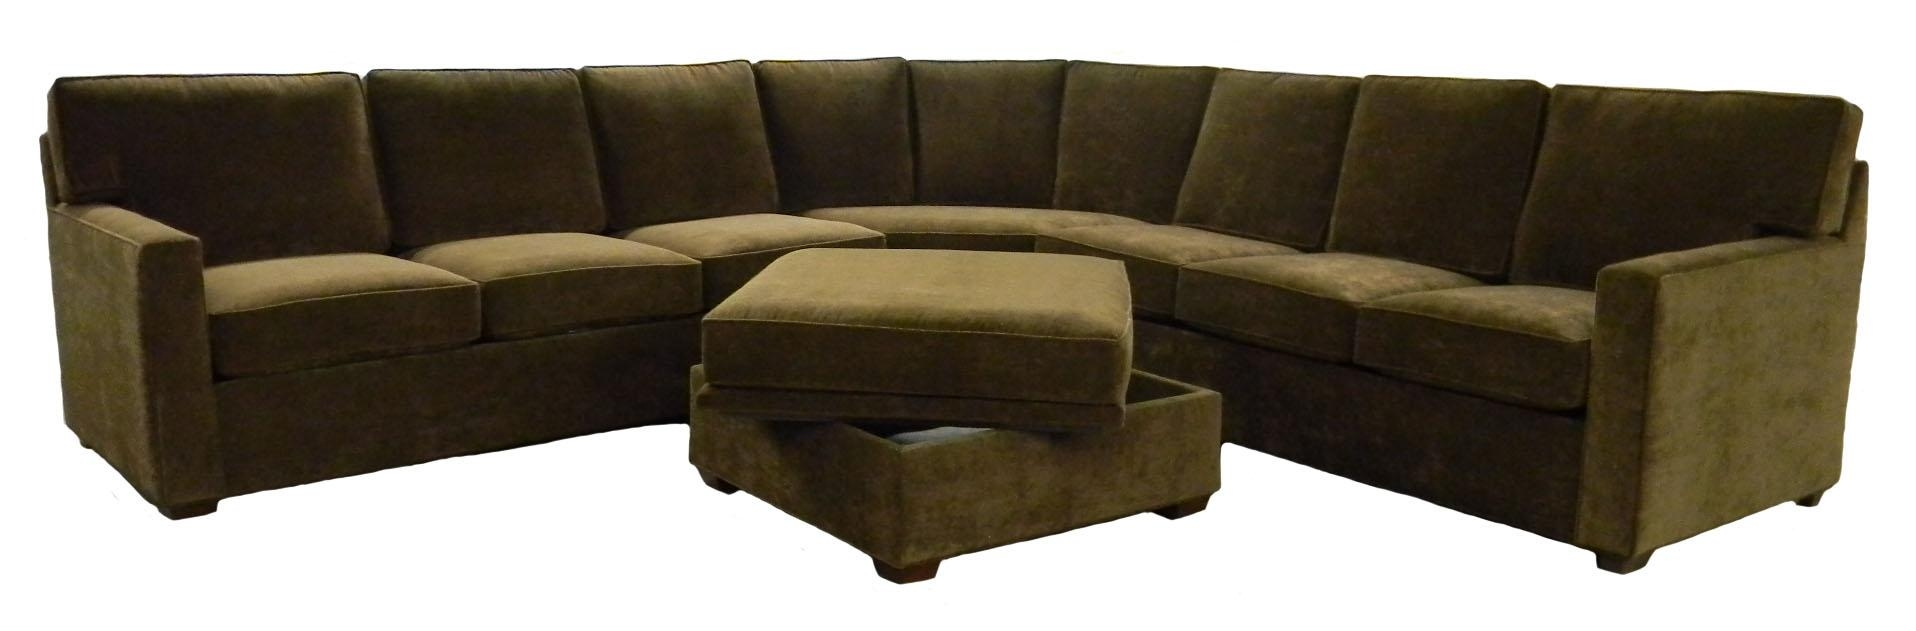 Photos Examples Custom Sectional Sofas Carolina Chair Furniture Inside Sectinal Sofas (Image 12 of 20)